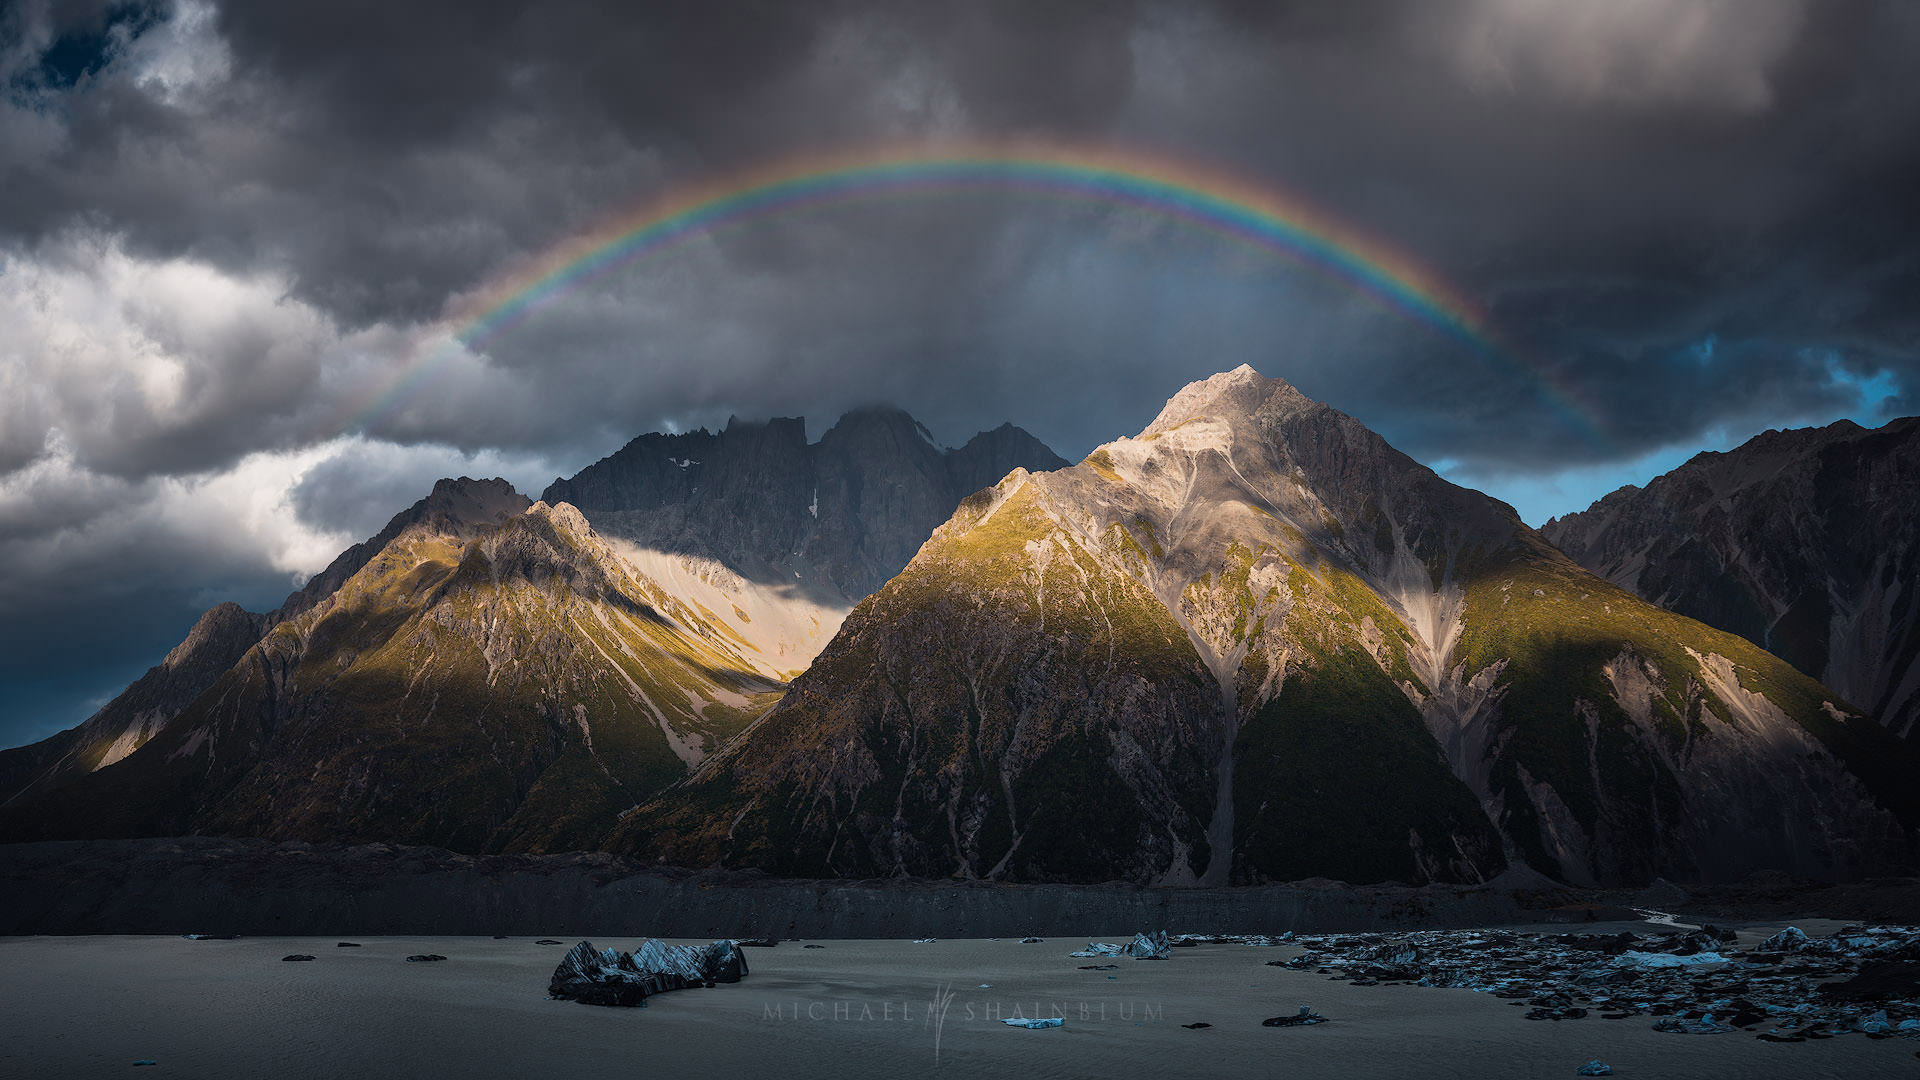 Rainbow Mount Cook, New Zealand Landscape Photography